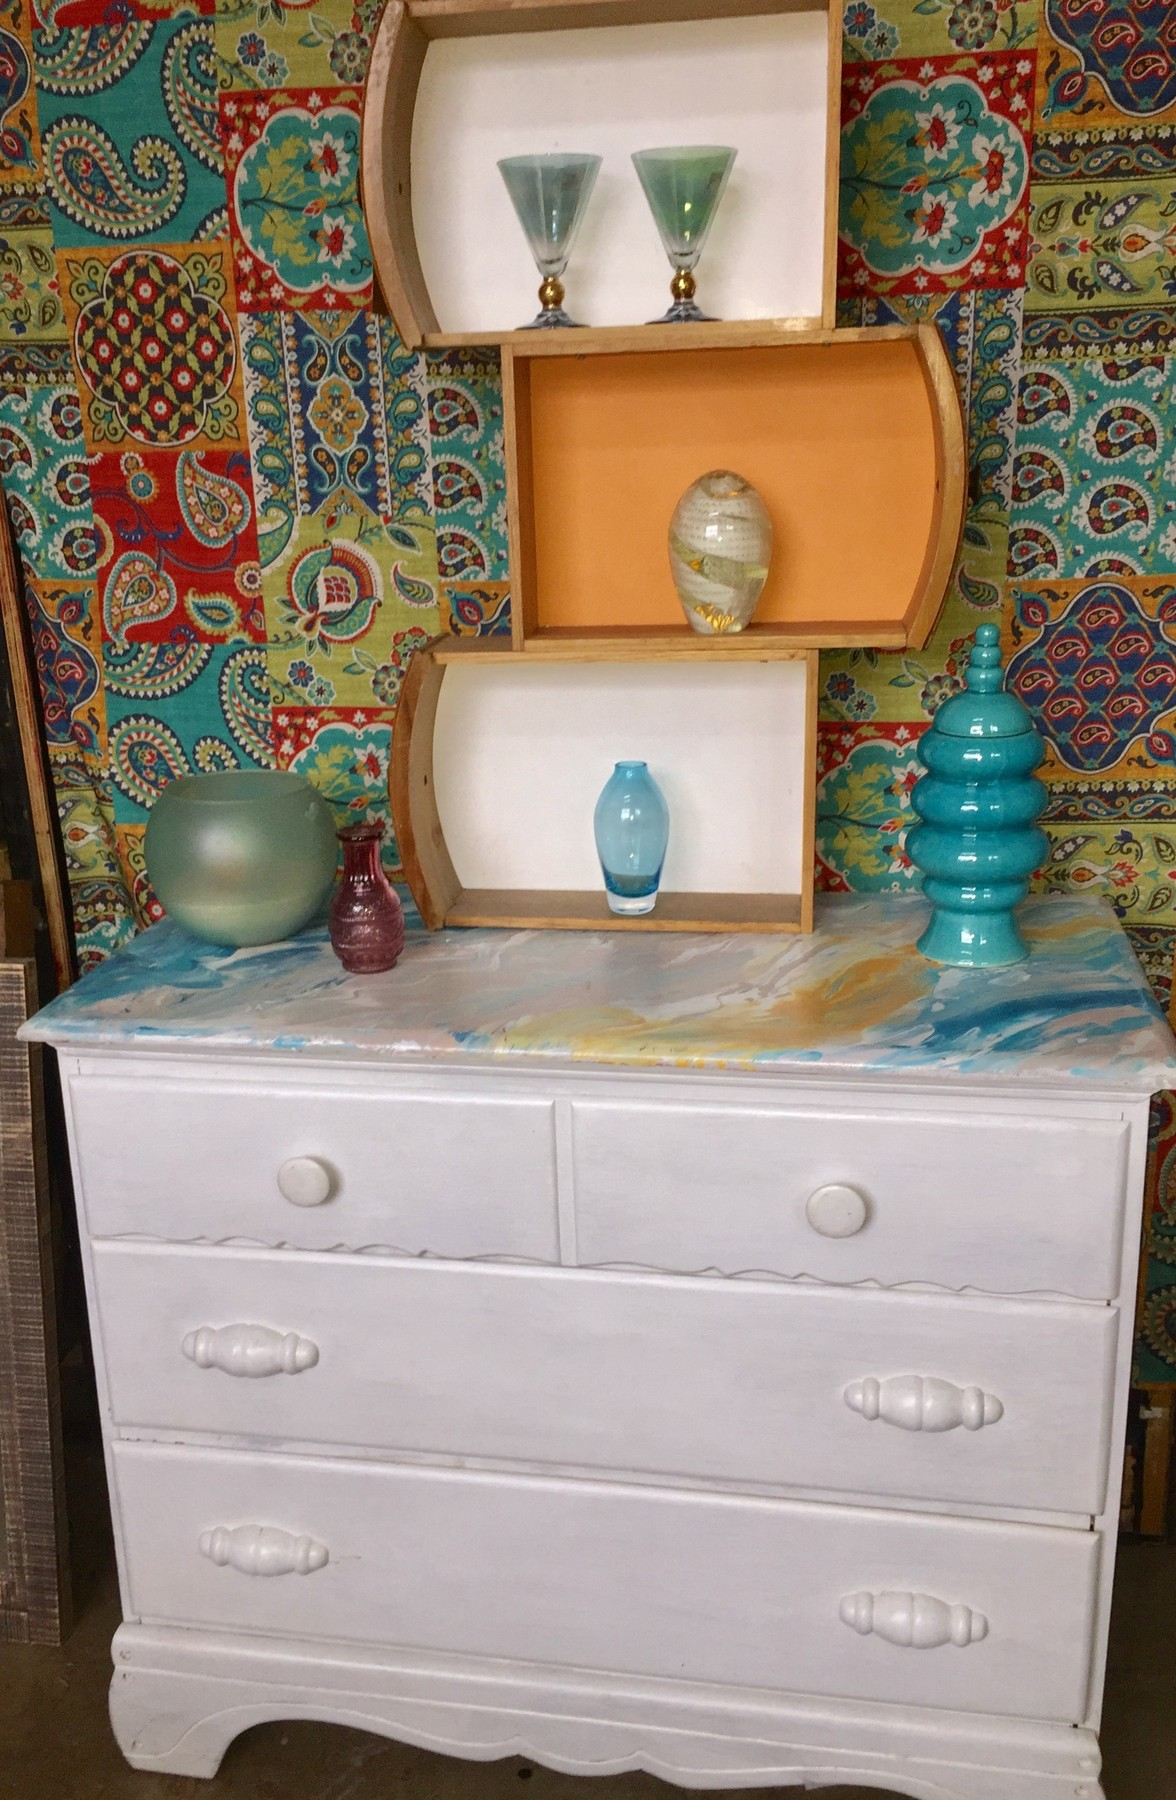 Tim's painted dresser adorned with stylish accessories